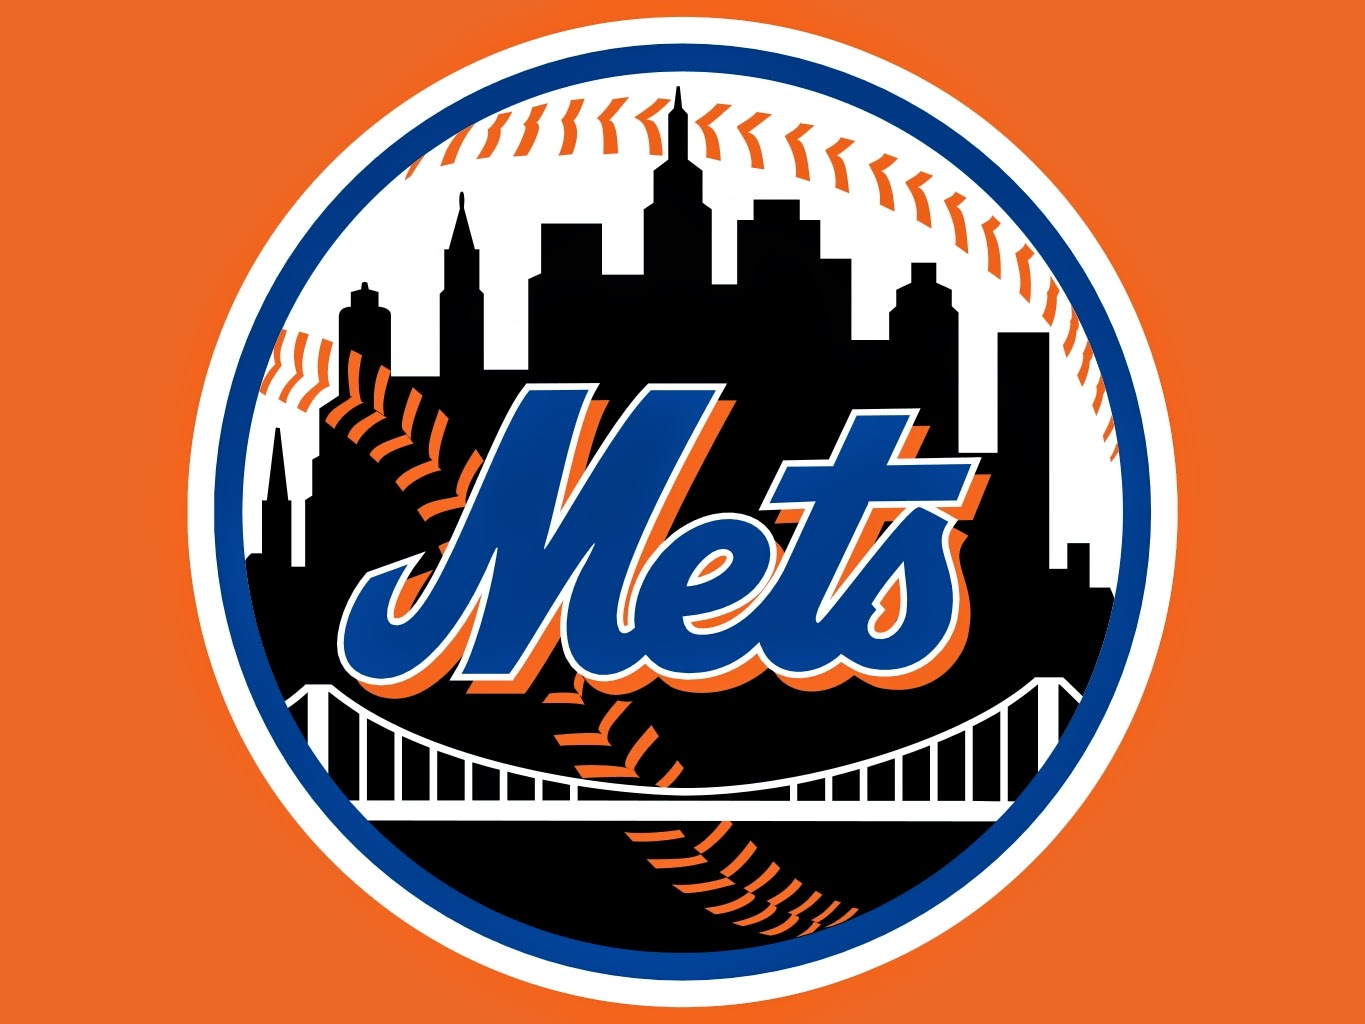 New York Mets Logos